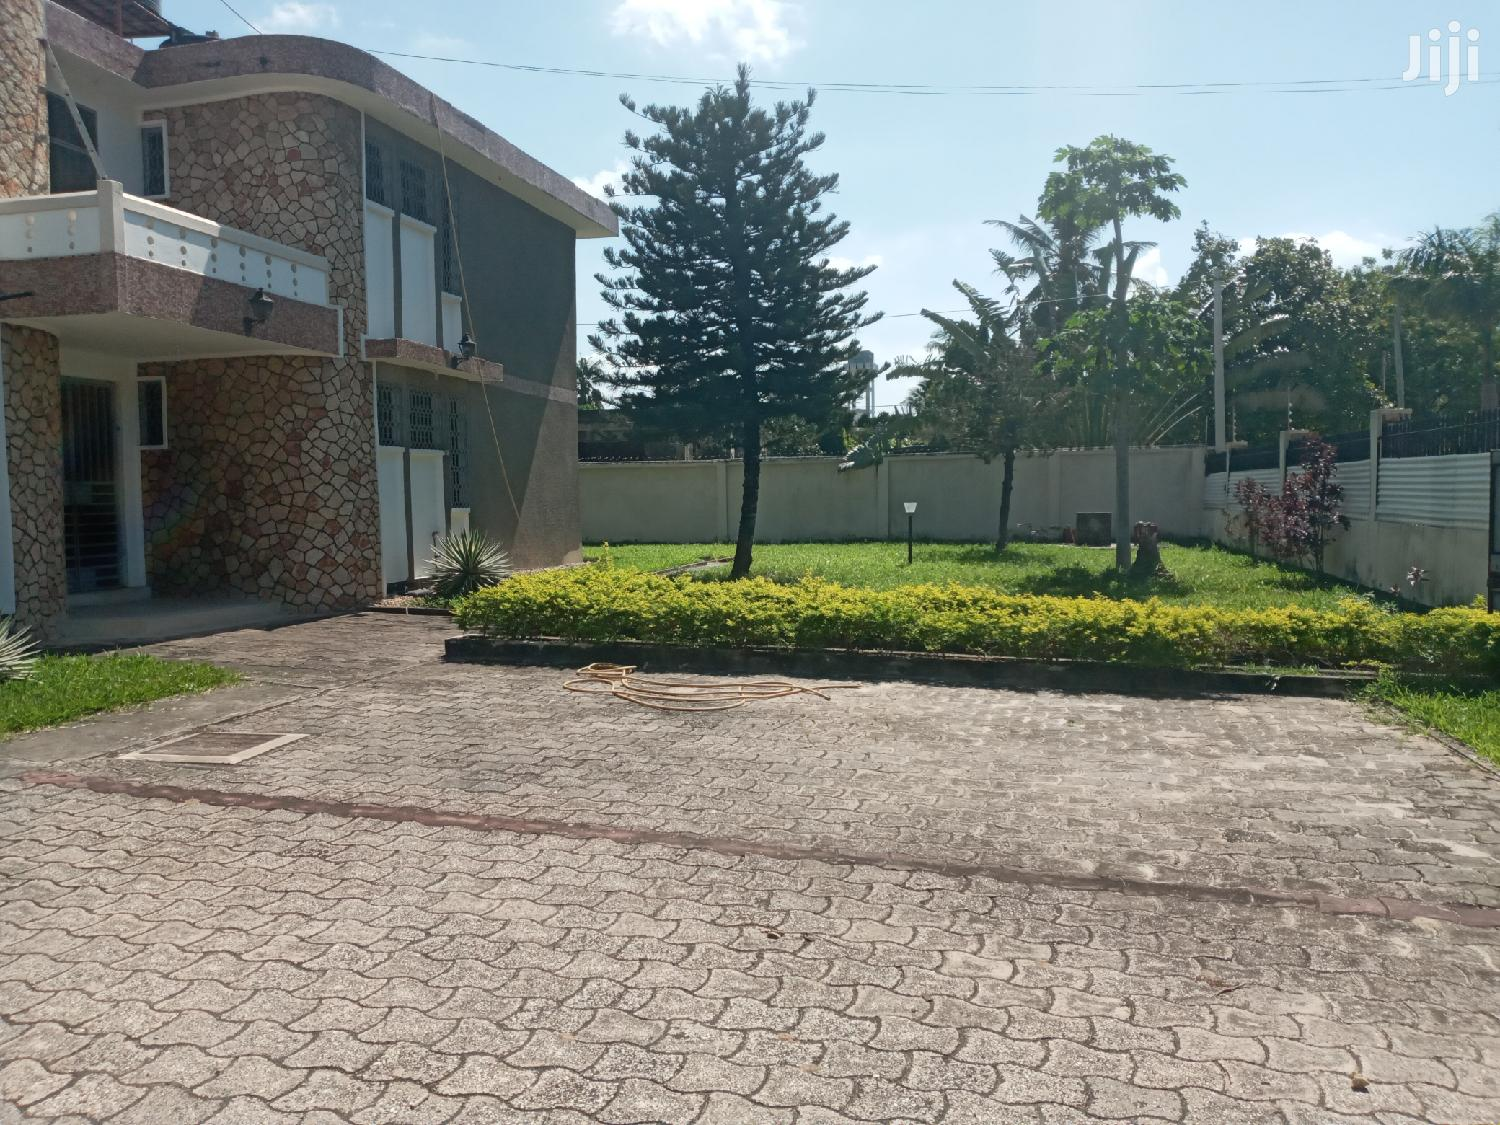 6 Bedroom House For Rent In Mikocheni Not Far From Rose Garden | Houses & Apartments For Rent for sale in Kinondoni, Dar es Salaam, Tanzania